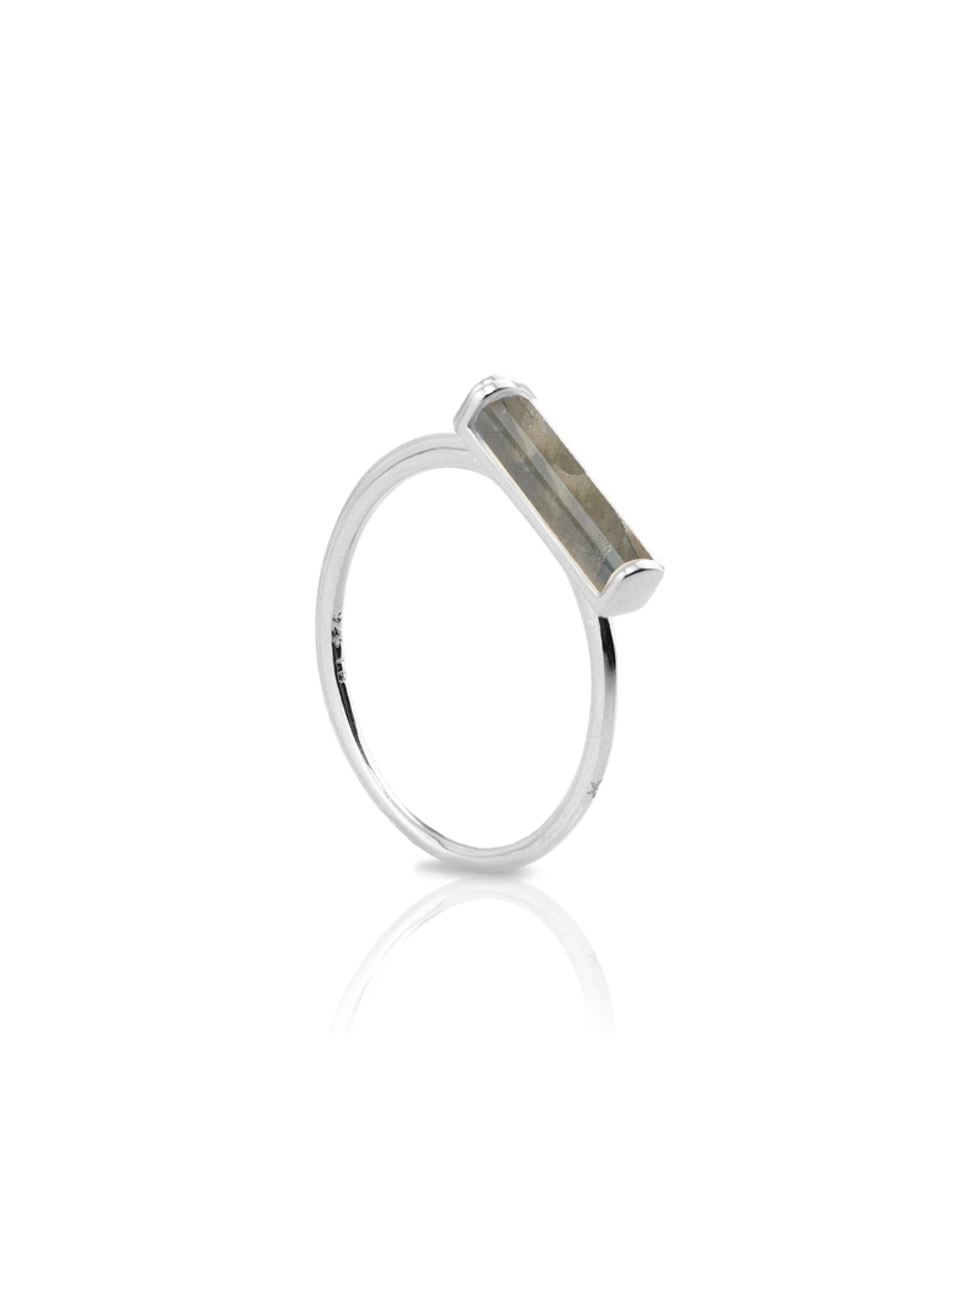 TUB LAB silver ring